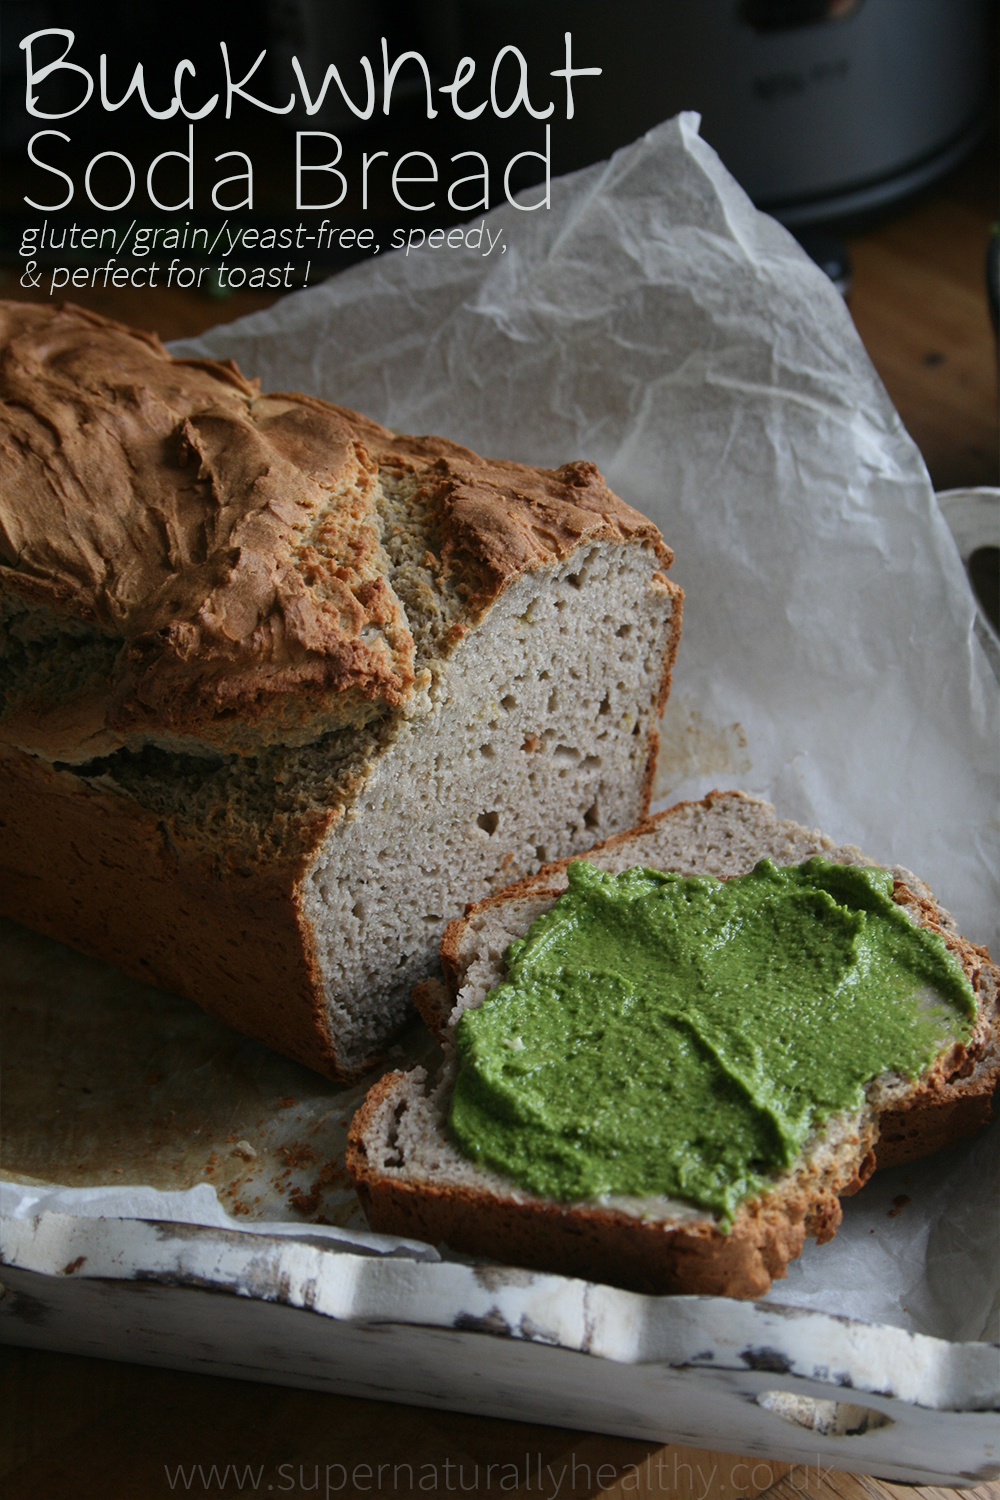 buckwheat-soda-bread-gluten-grain-free2